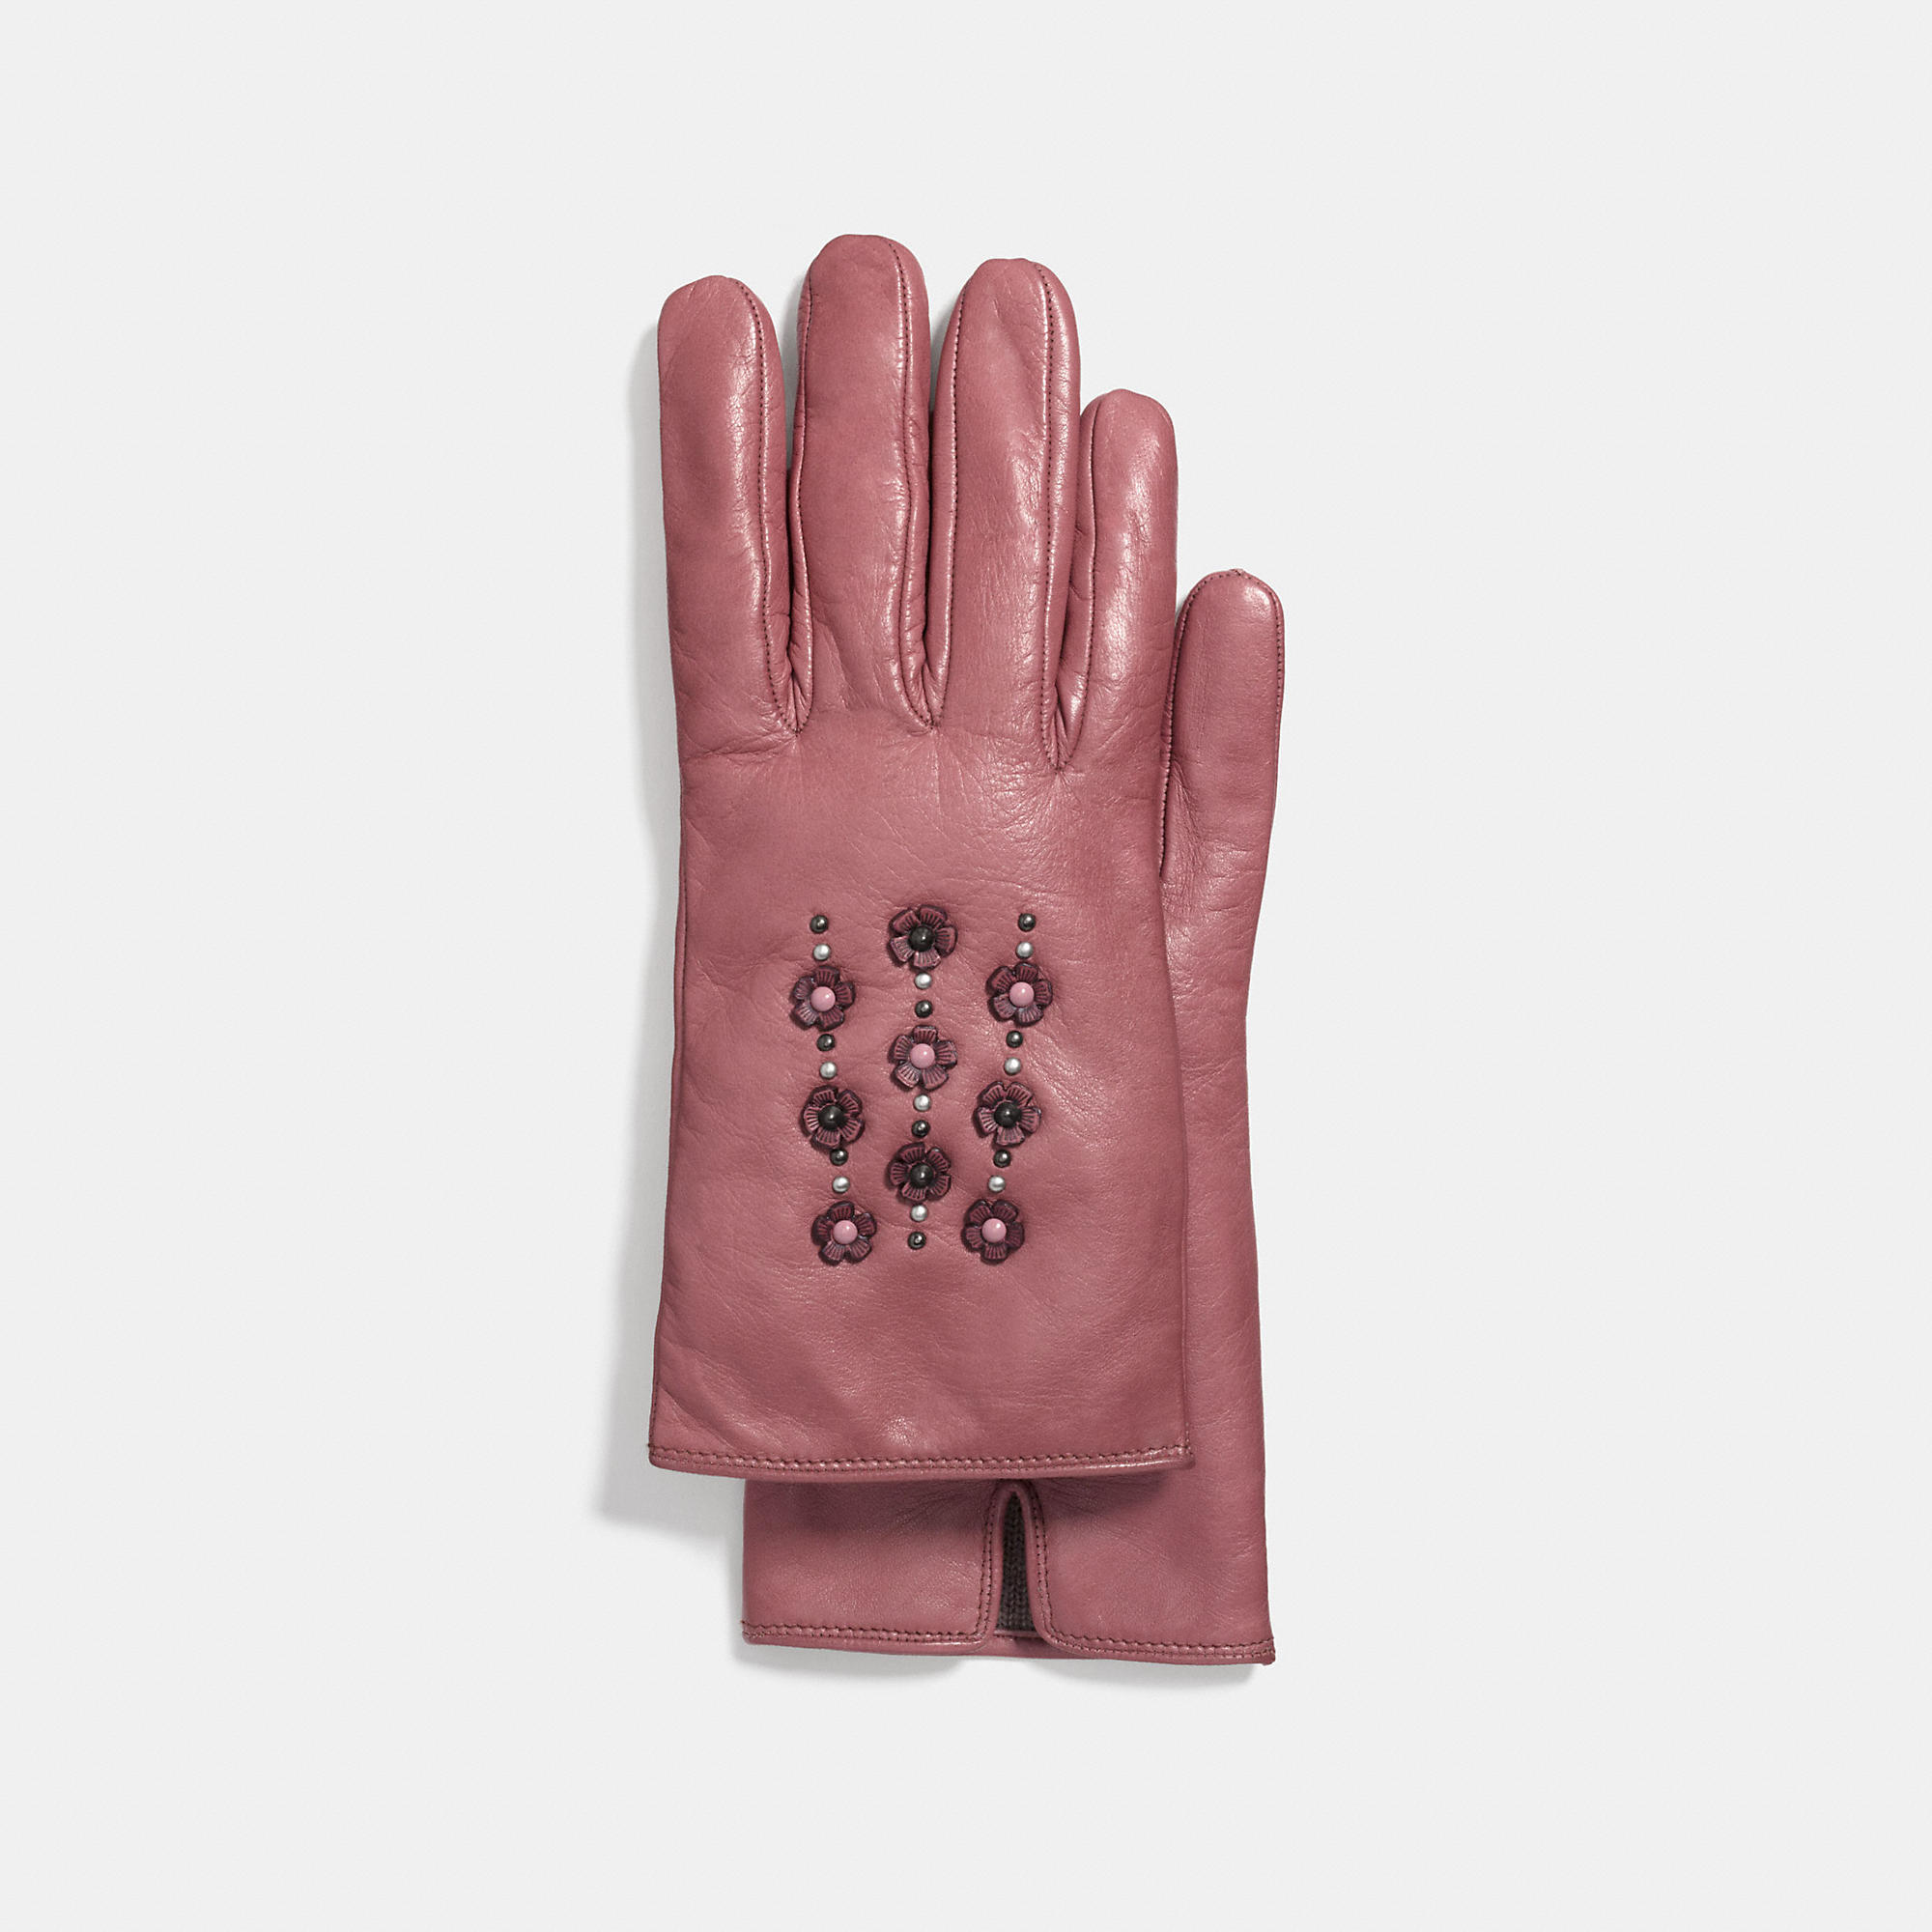 Coach Tea Rose Embellished Leather Glove